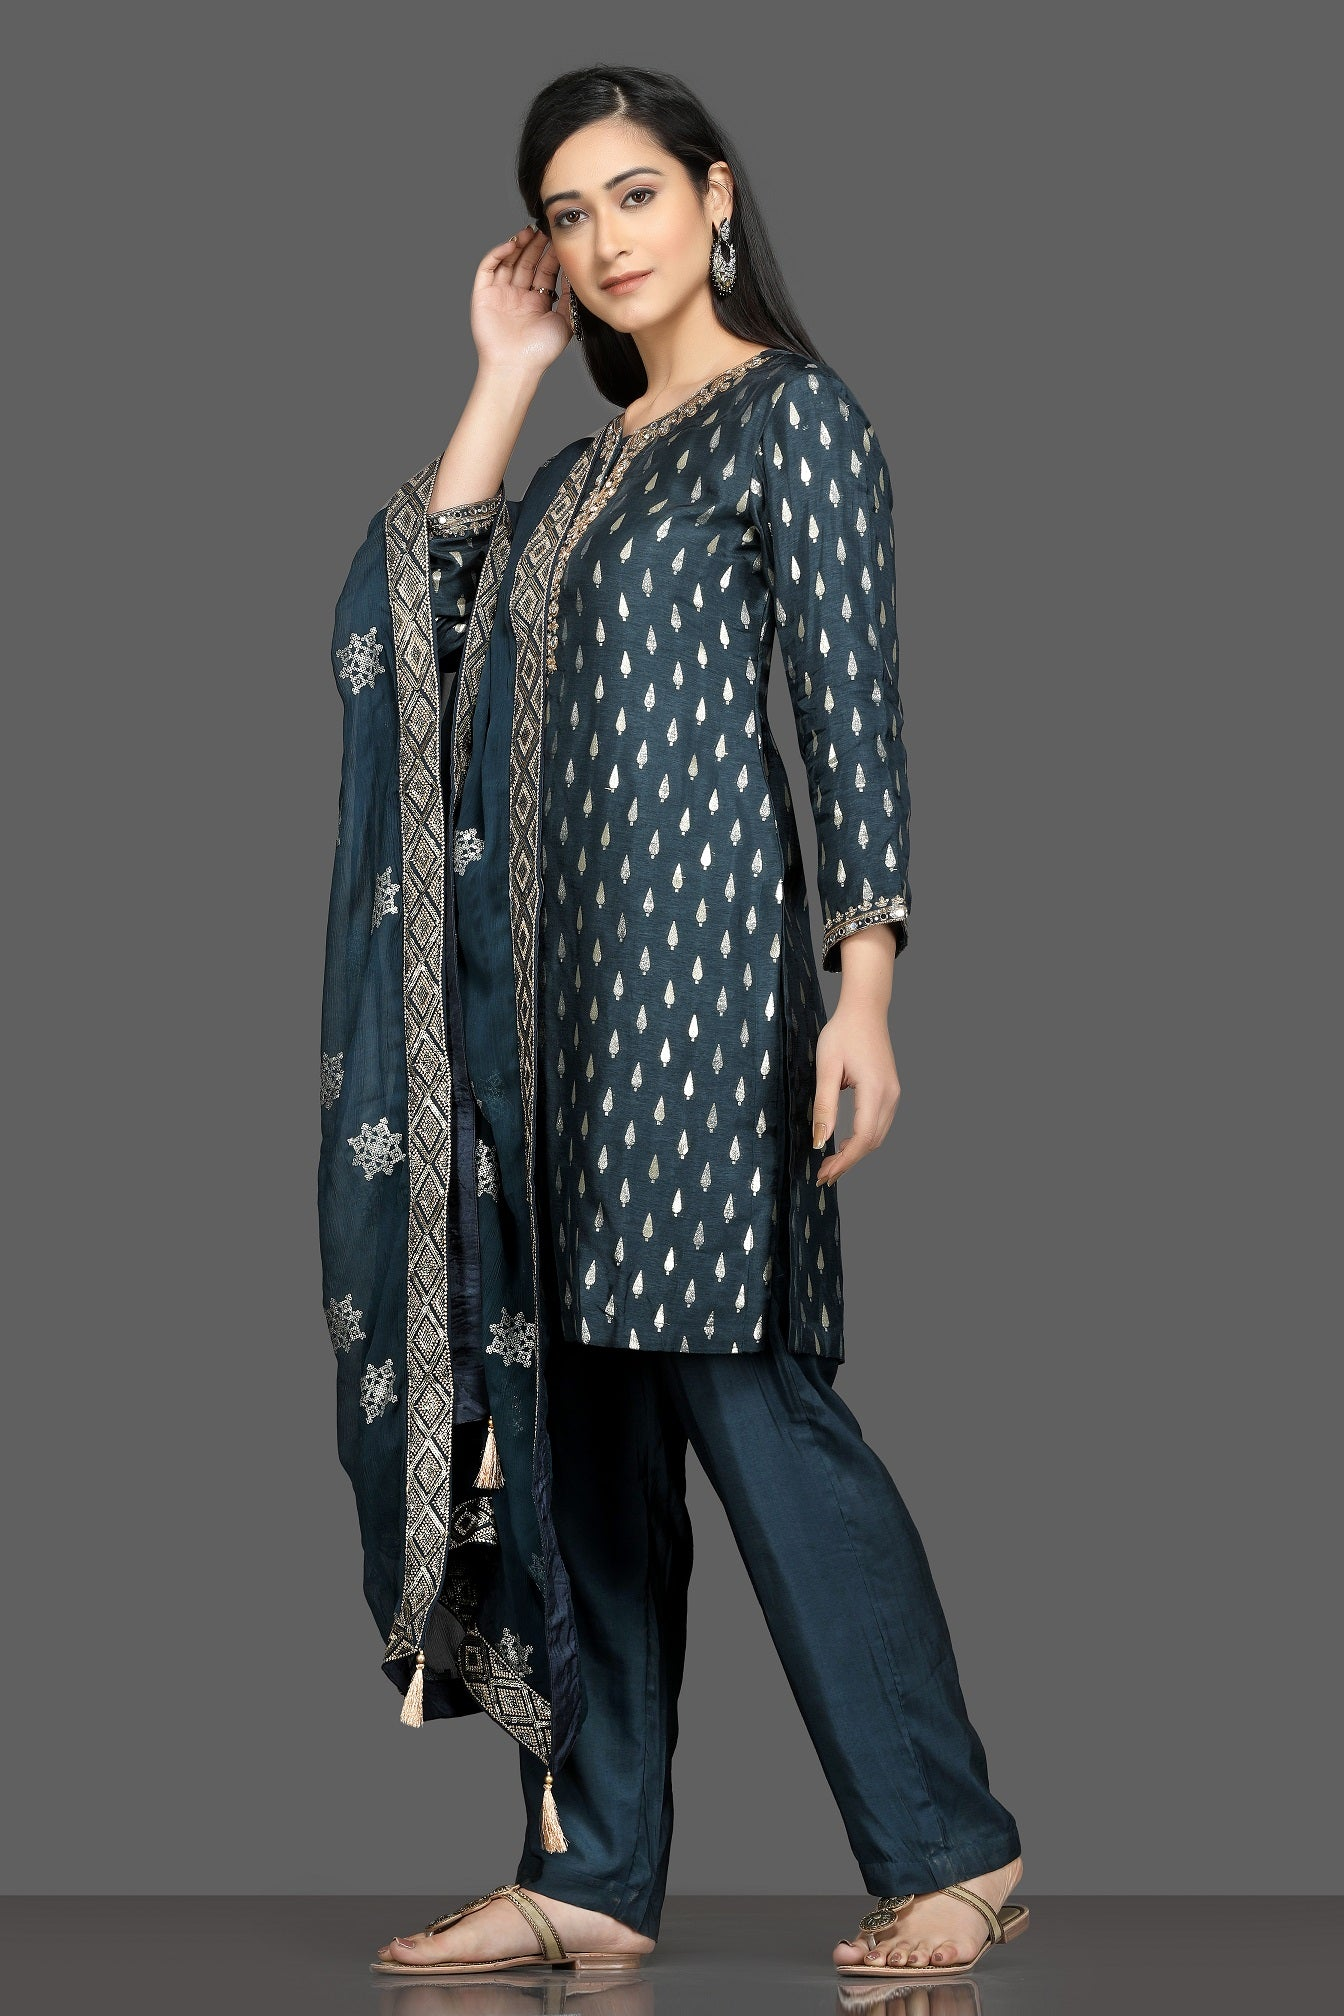 Shop stunning blue embroidered pant suit online in USA with embroidered dupatta. Dazzle on weddings and special occasions with exquisite Indian designer dresses, sharara suits, Anarkali suits, bridal lehegas from Pure Elegance Indian fashion store in USA.-left